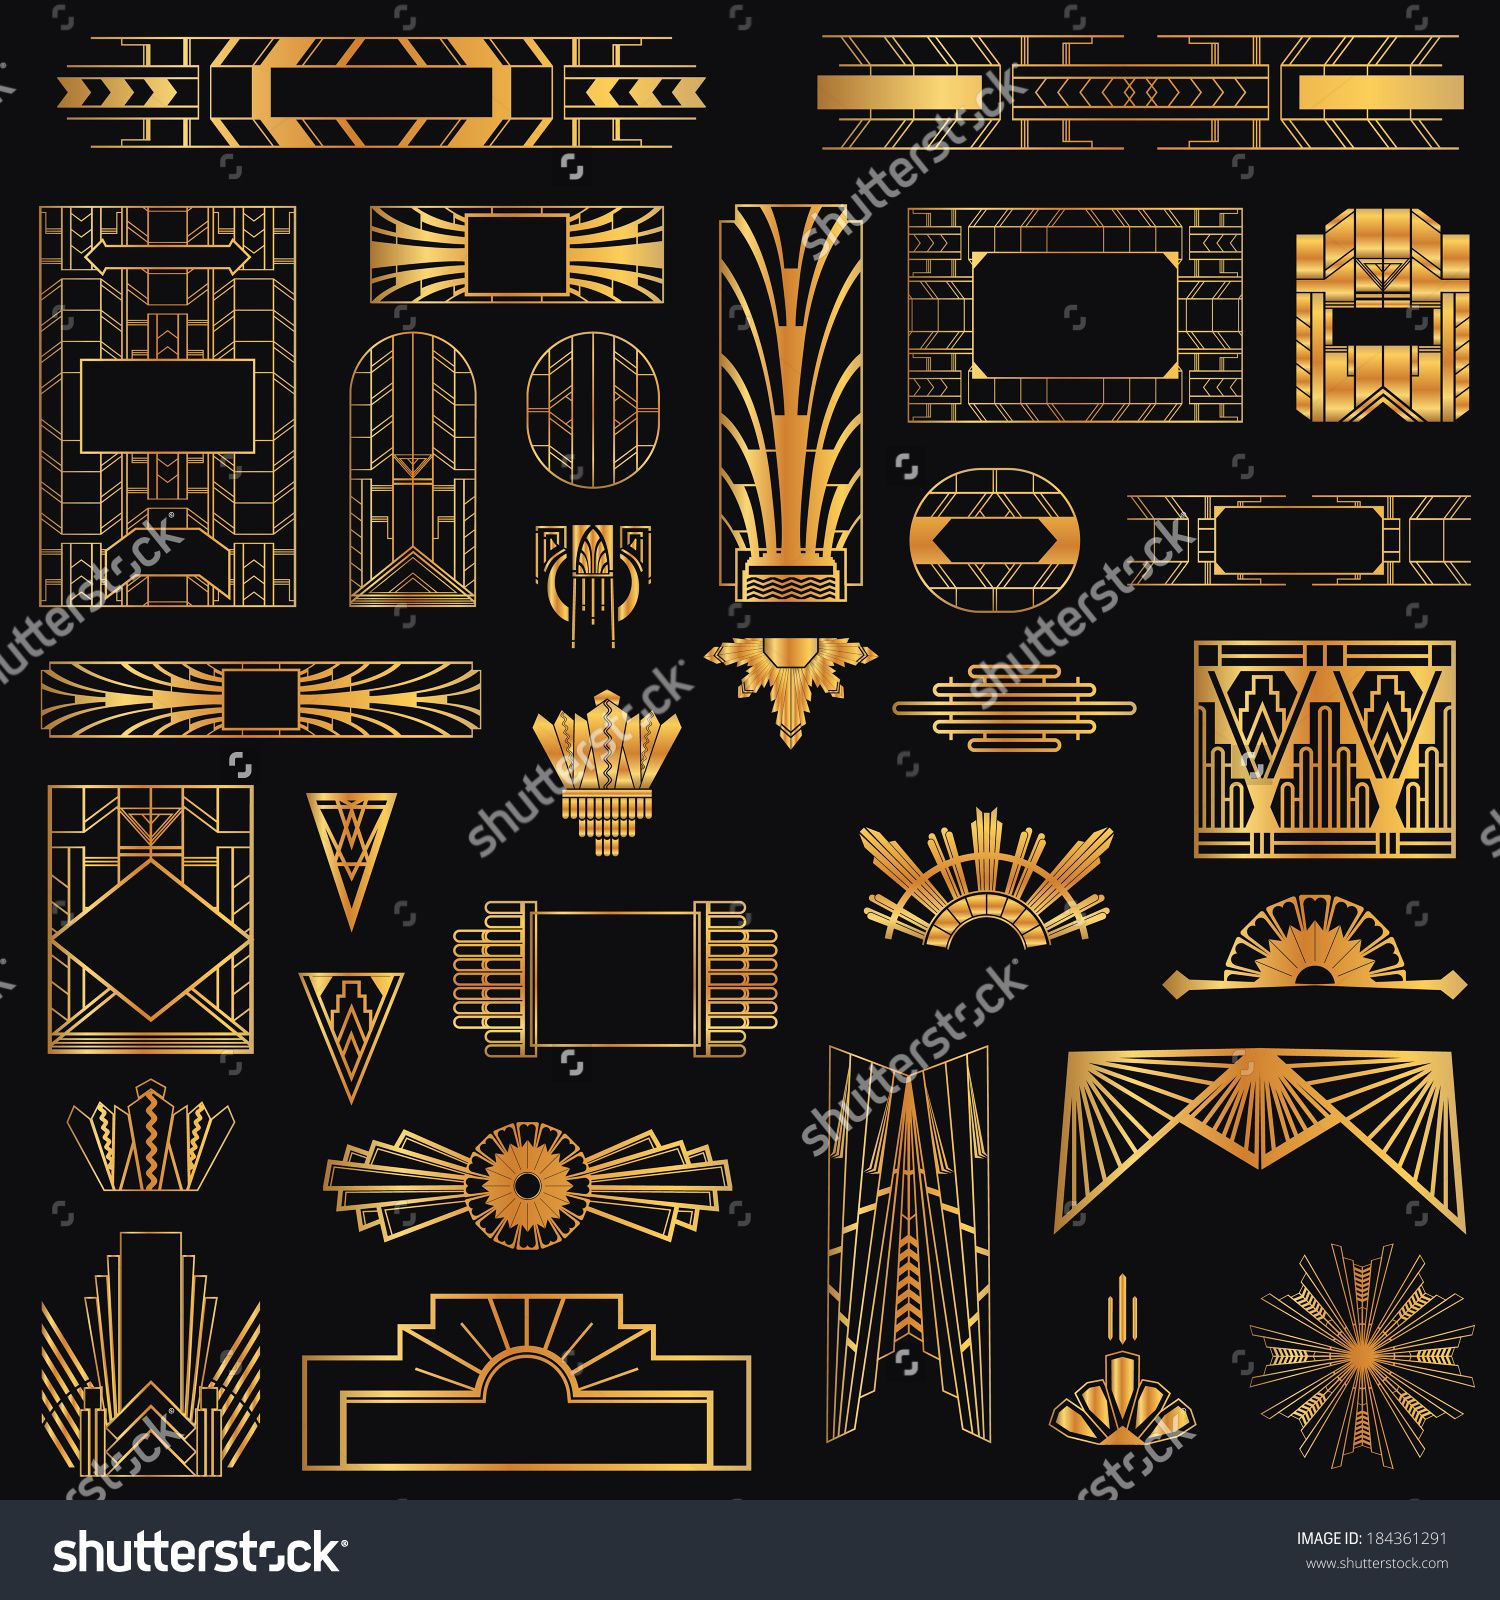 Art deco elements graphic designs google search art for Art deco interior design elements